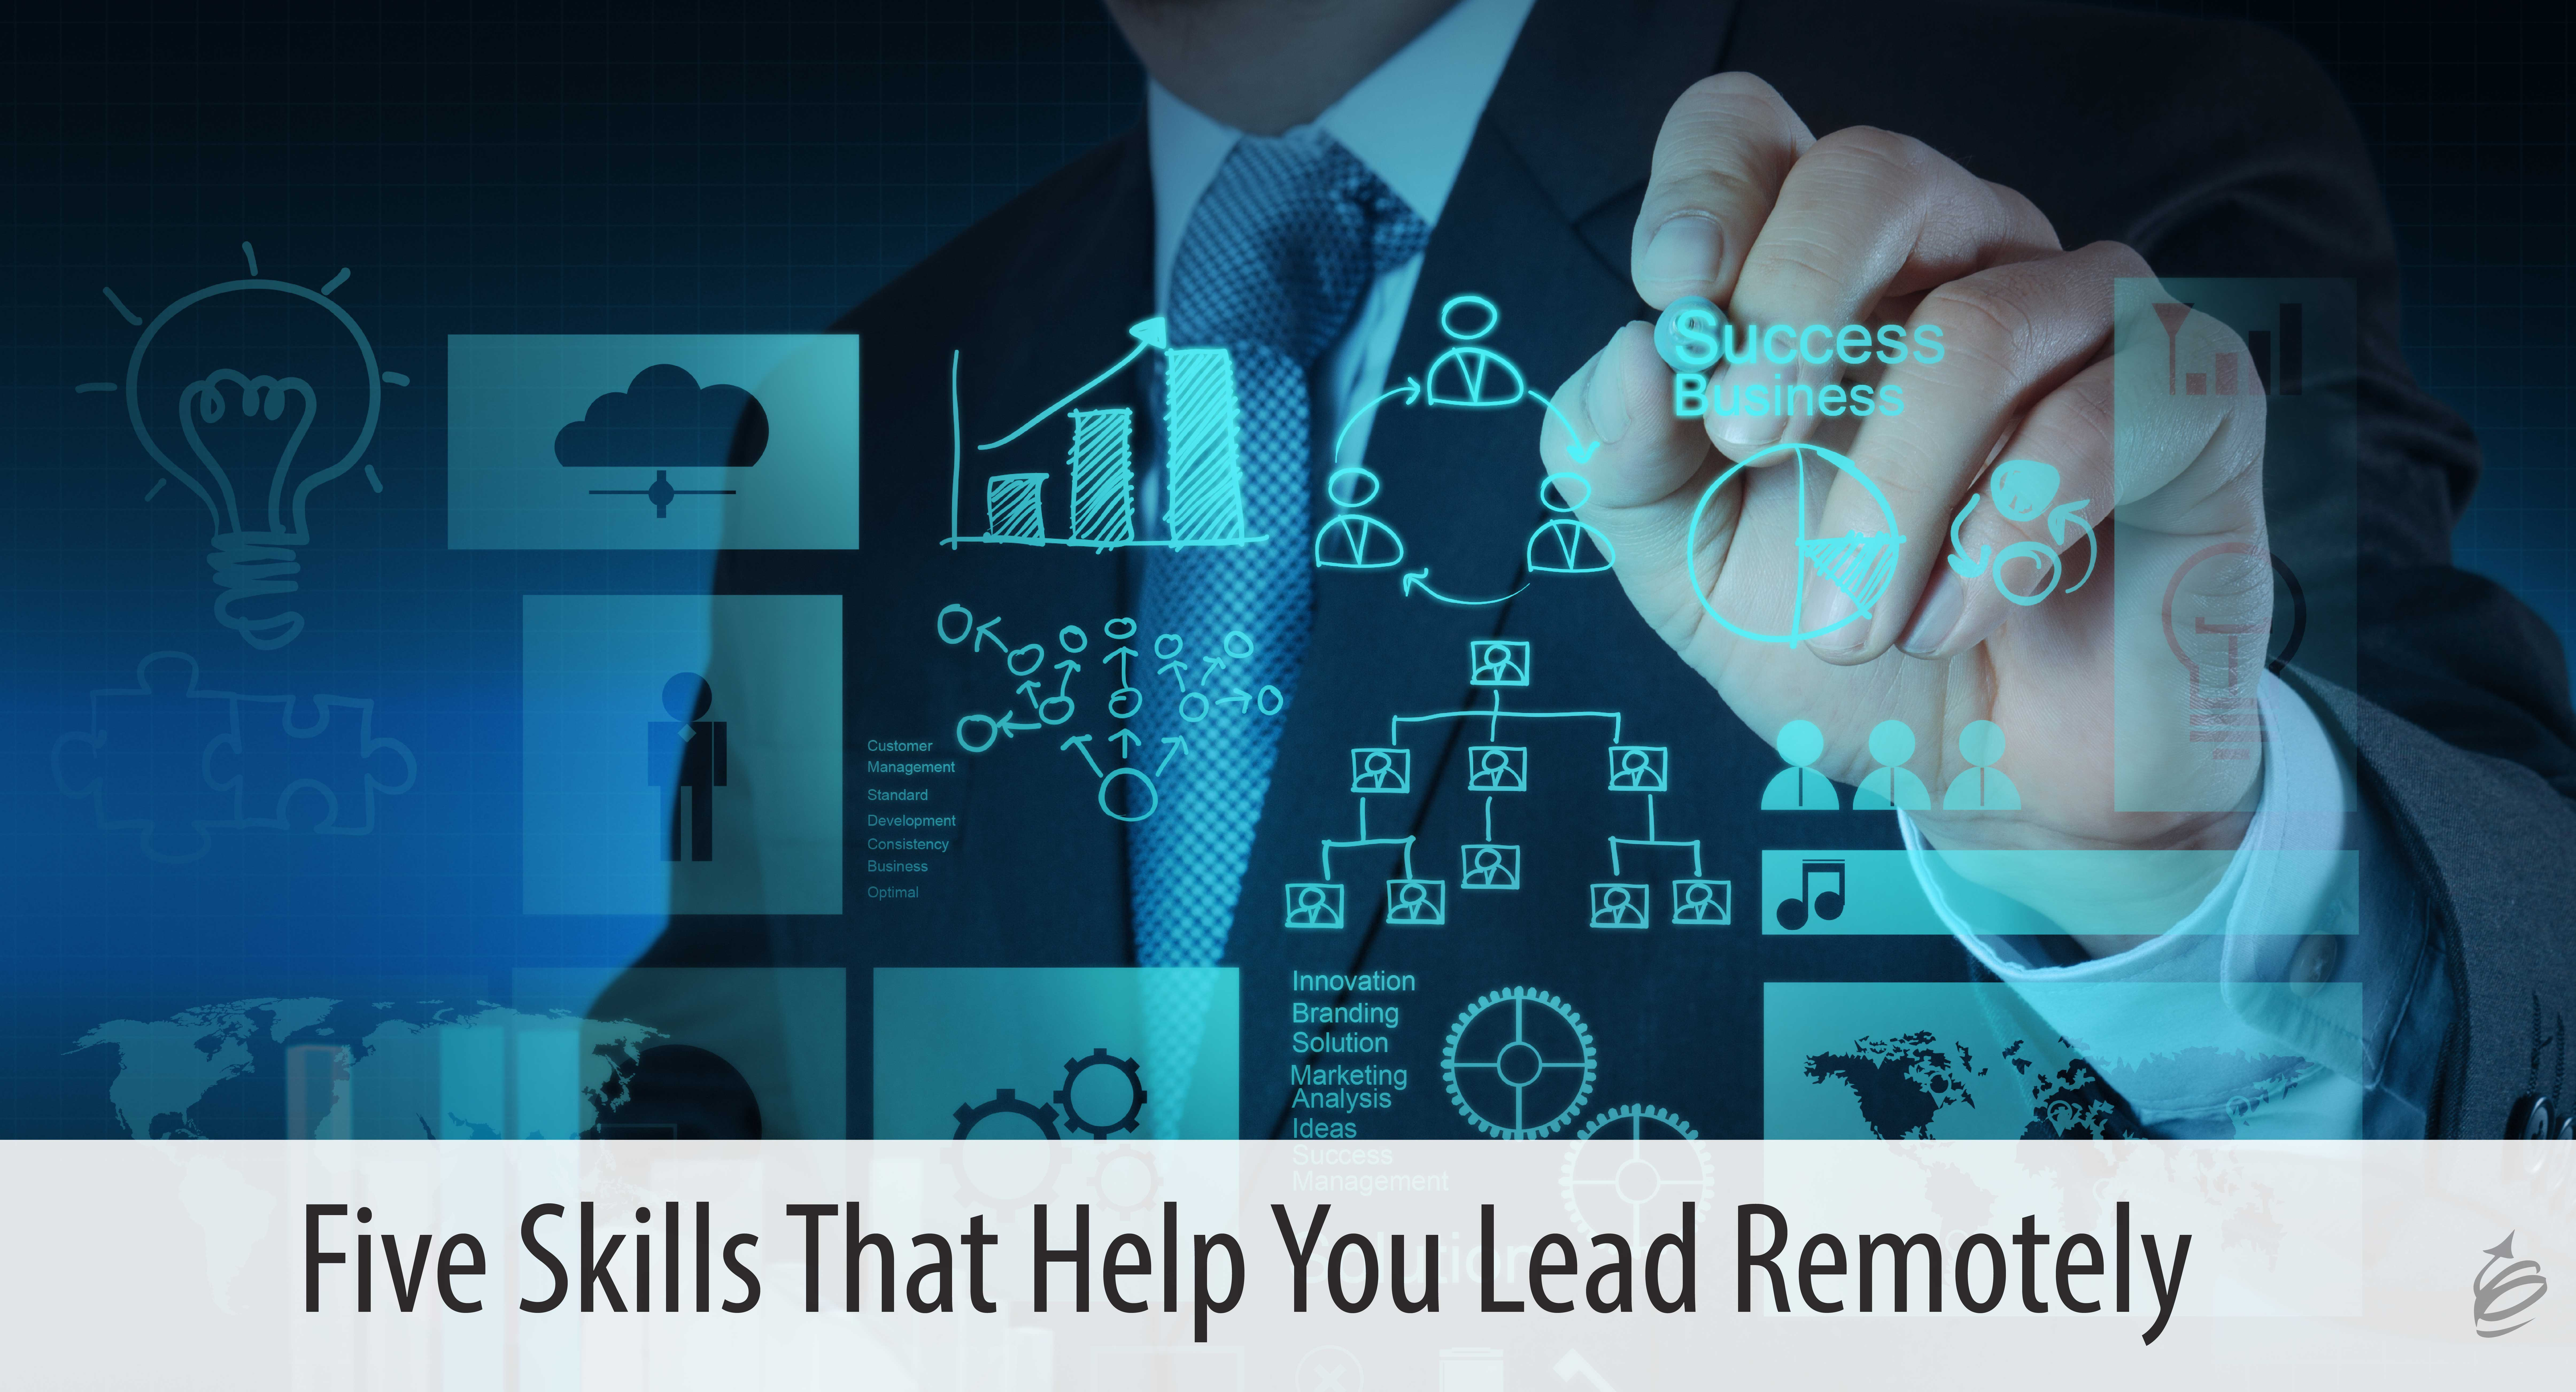 lead remotely